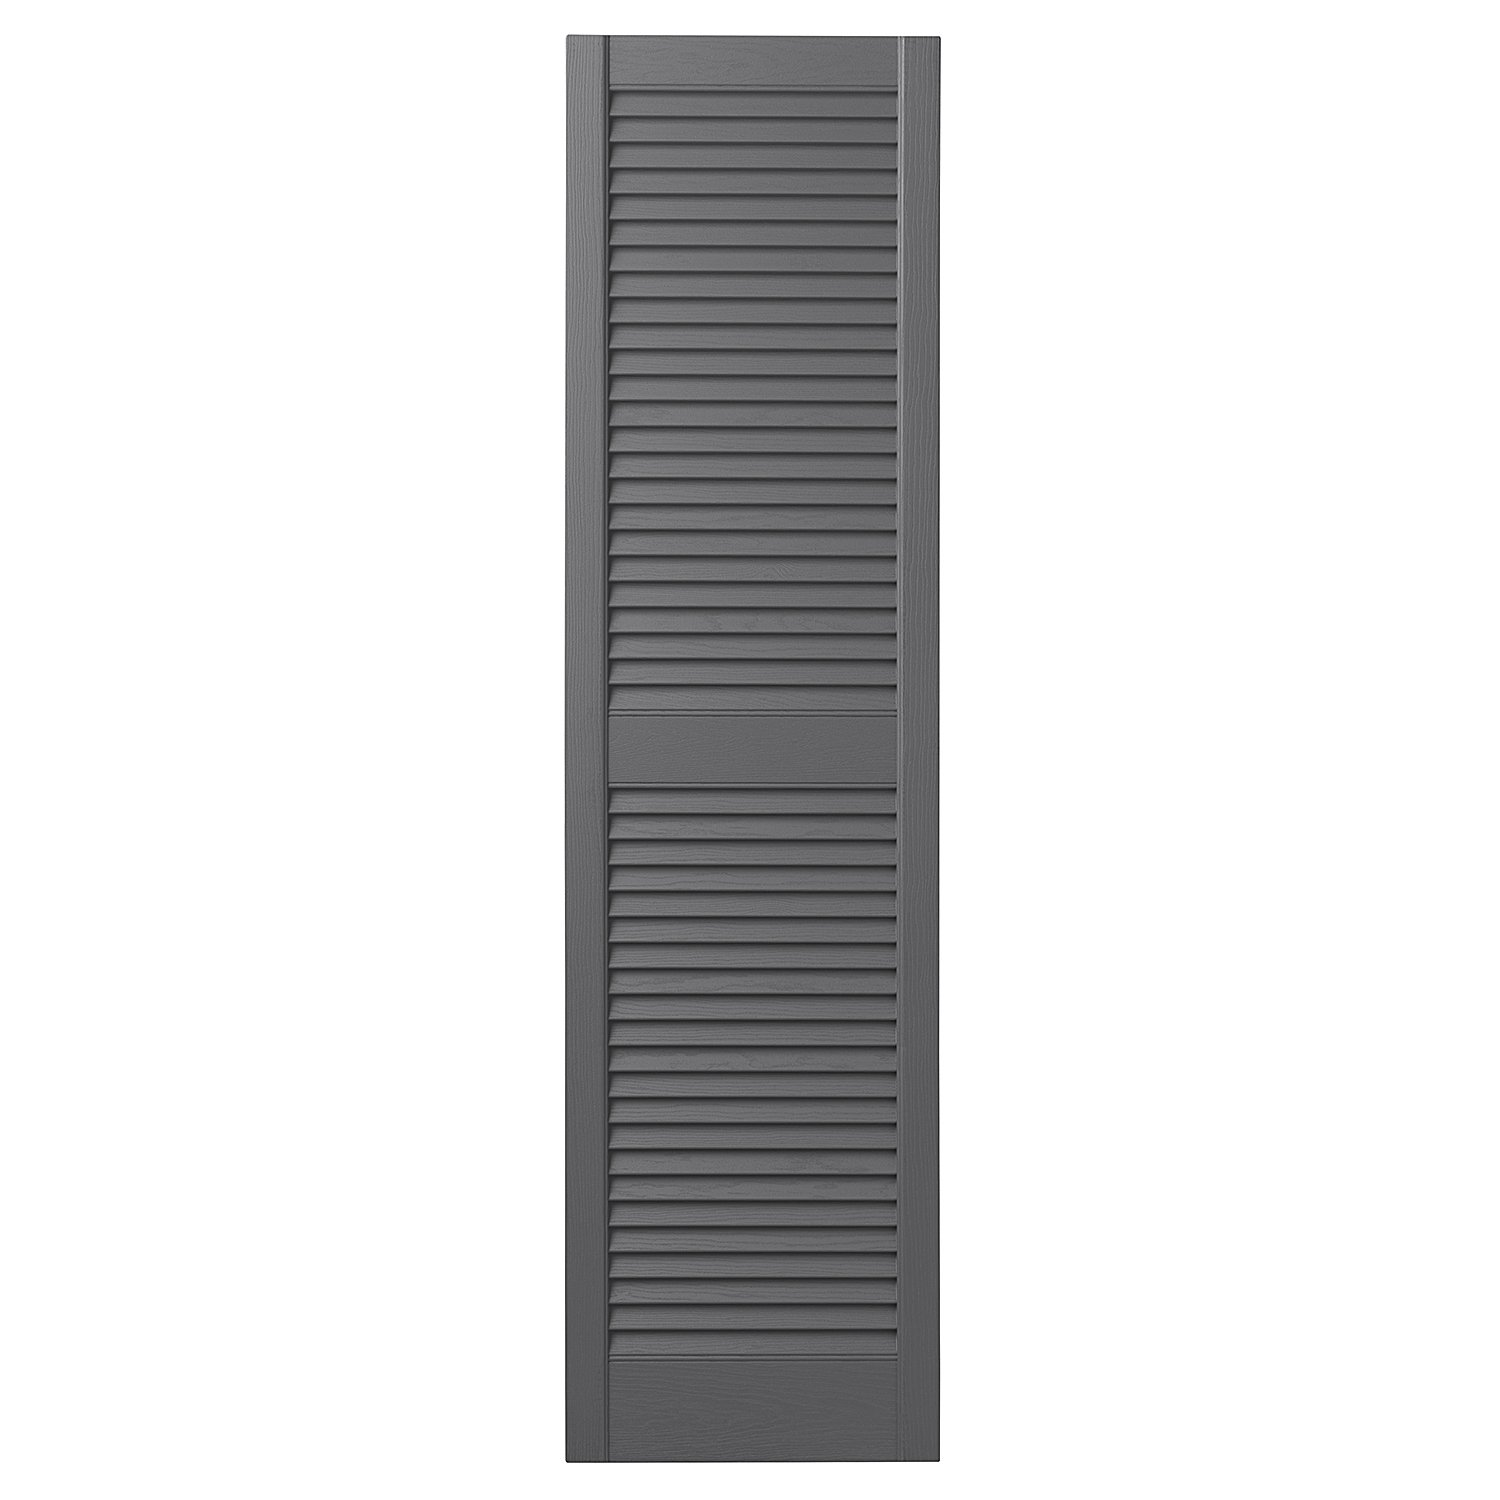 Ply Gem Shutters and Accents VINLV1551 16 Louvered Shutter, 15'', Gray